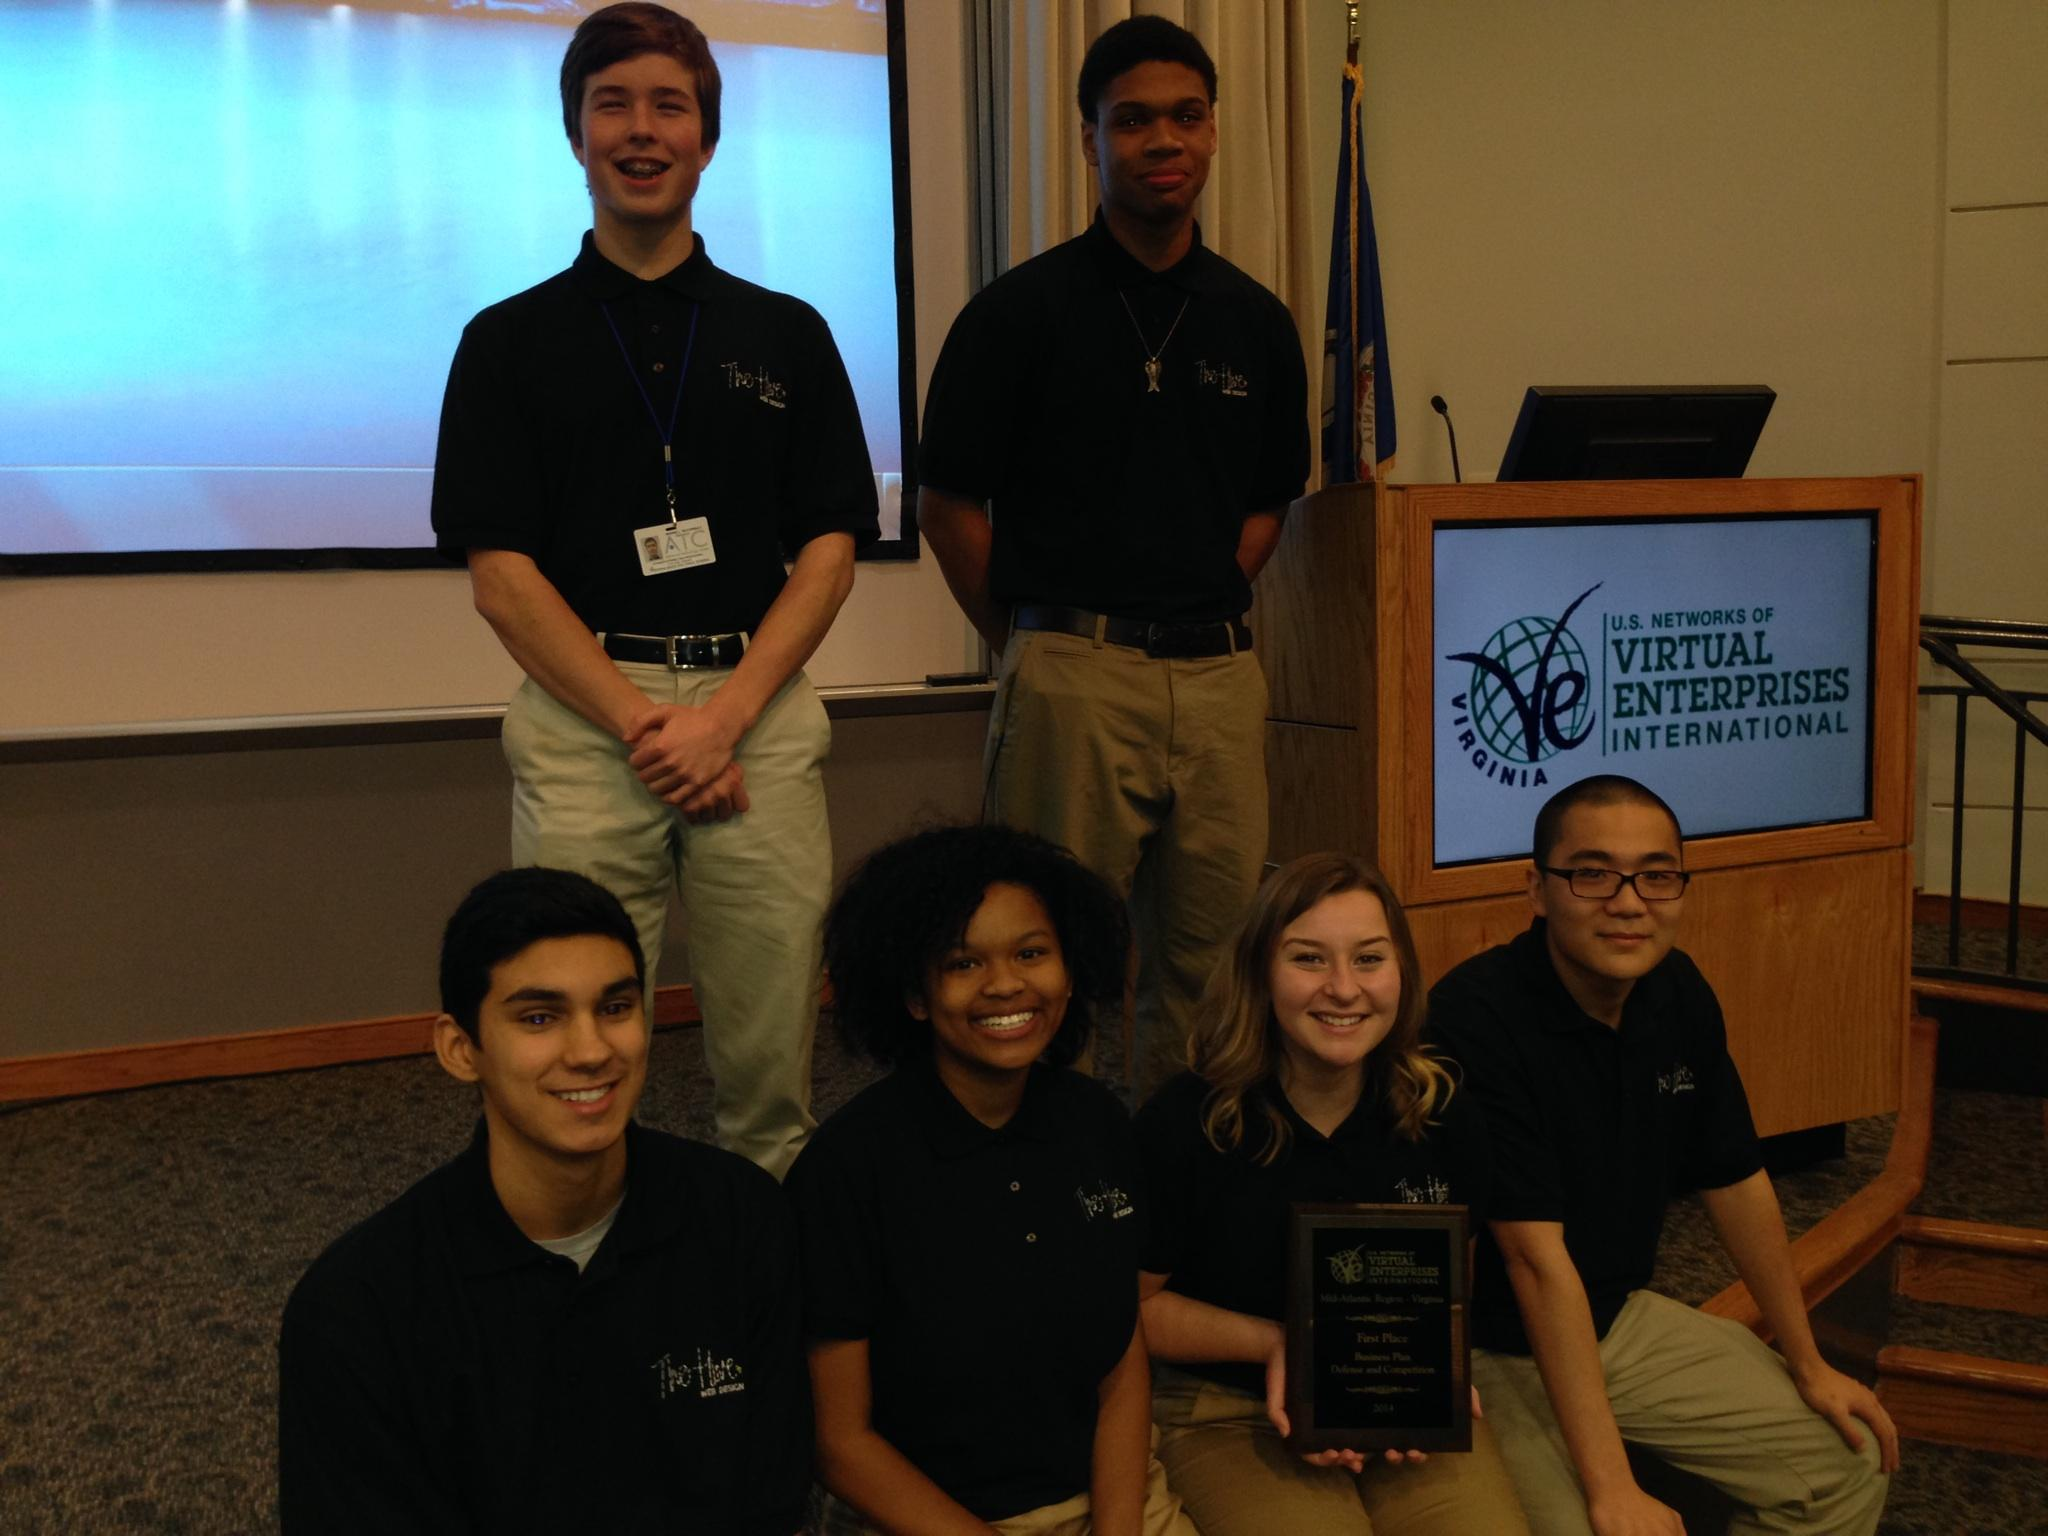 Hive team members Tristan Adams, Max McCormack, Glenaye Calvin, Steffan Watts, Hannah Peterson and Jia Lin are pictured with instructor Katharine Sargent.